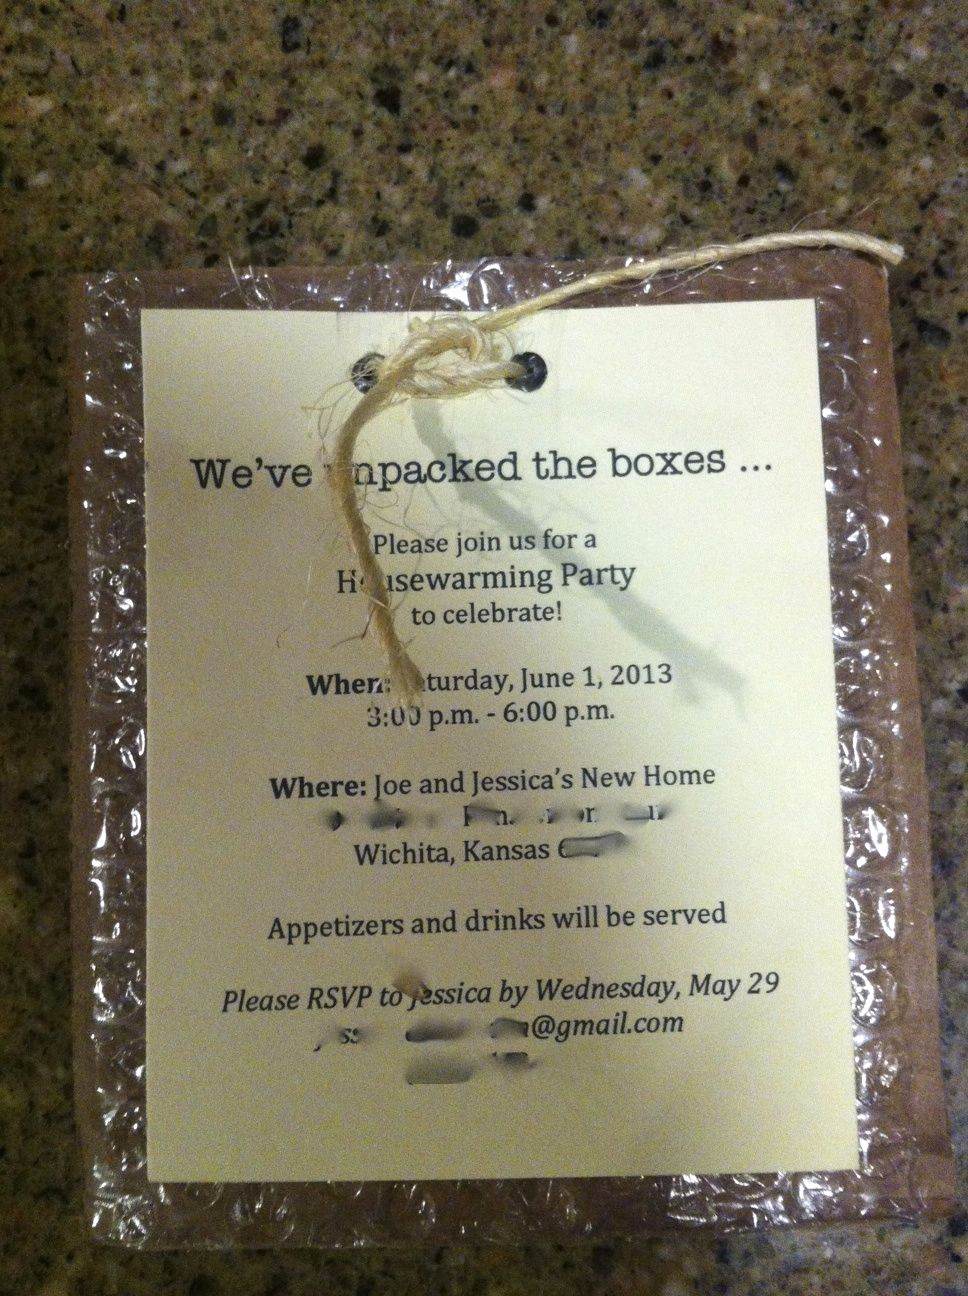 House Warming Invitation Ideas New Our Housewarming Party Invitation with Personal Info